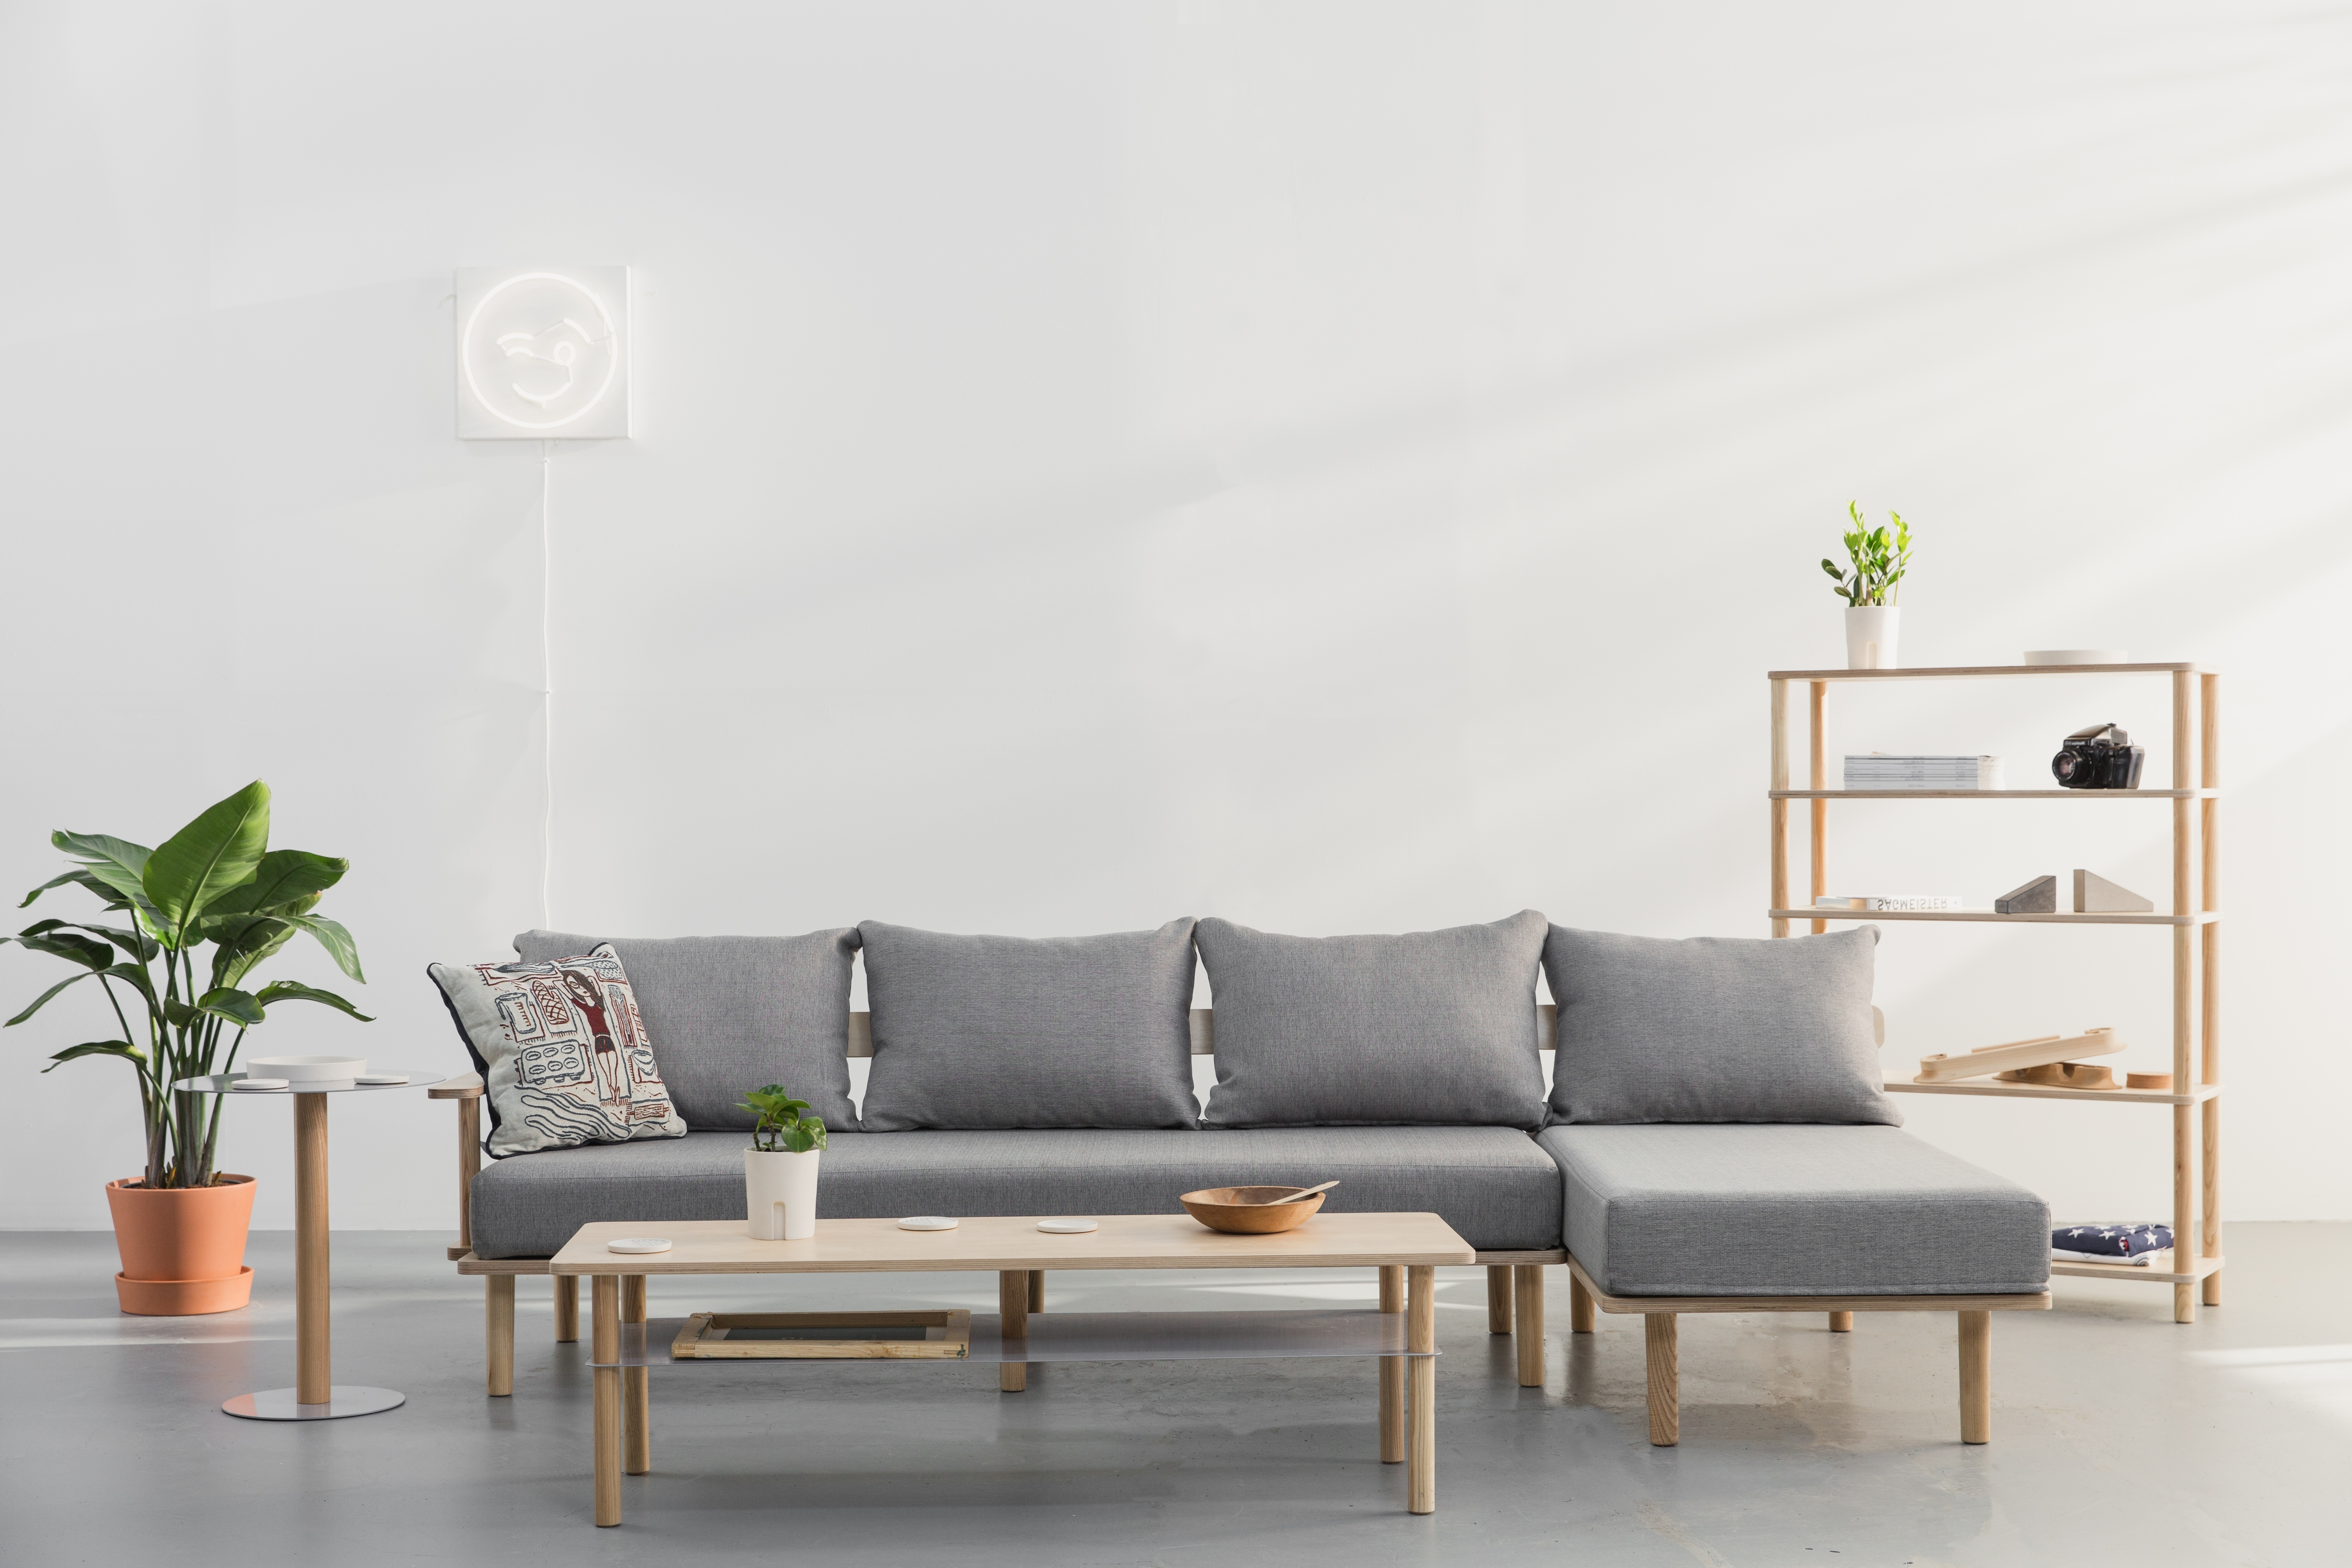 Mid Range Sofas With Regard To Widely Used After Ikea: 10 Mid Range Furniture Stores That Won't Break The (View 8 of 15)